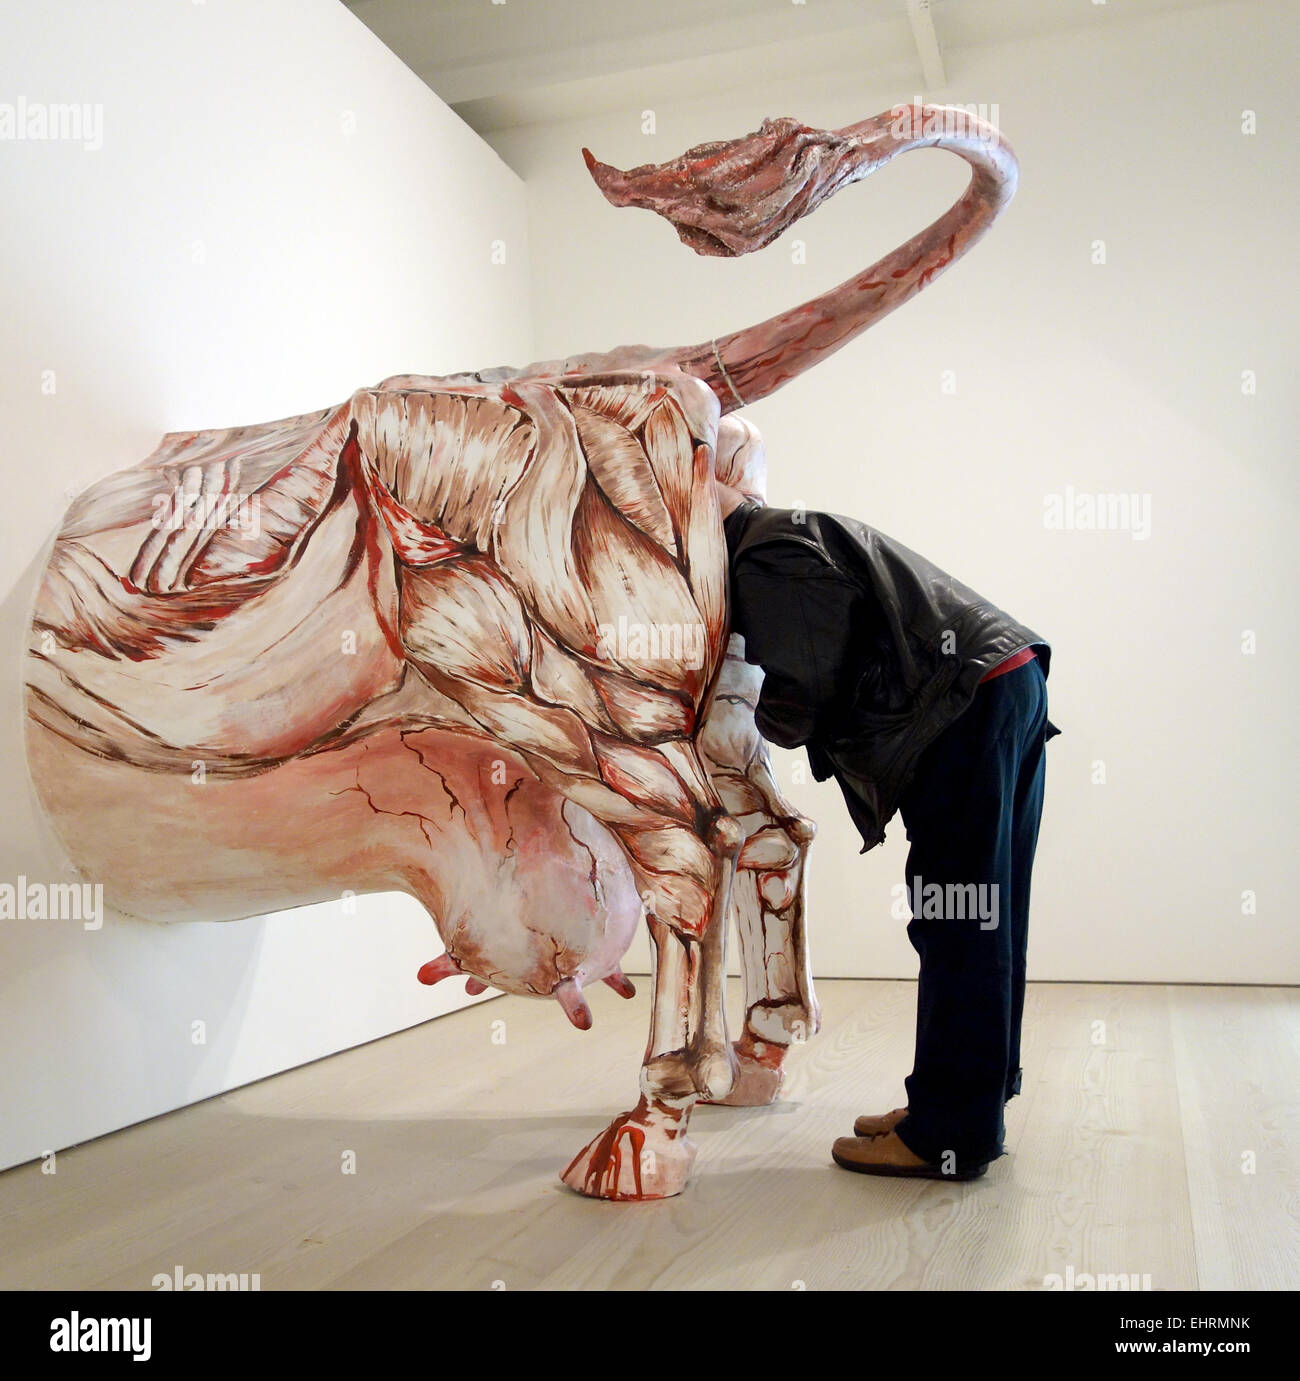 A visitor looks at a work of art called 'Deep into Russia' by Oleg Kulik at the Saatchi gallery London - Stock Image